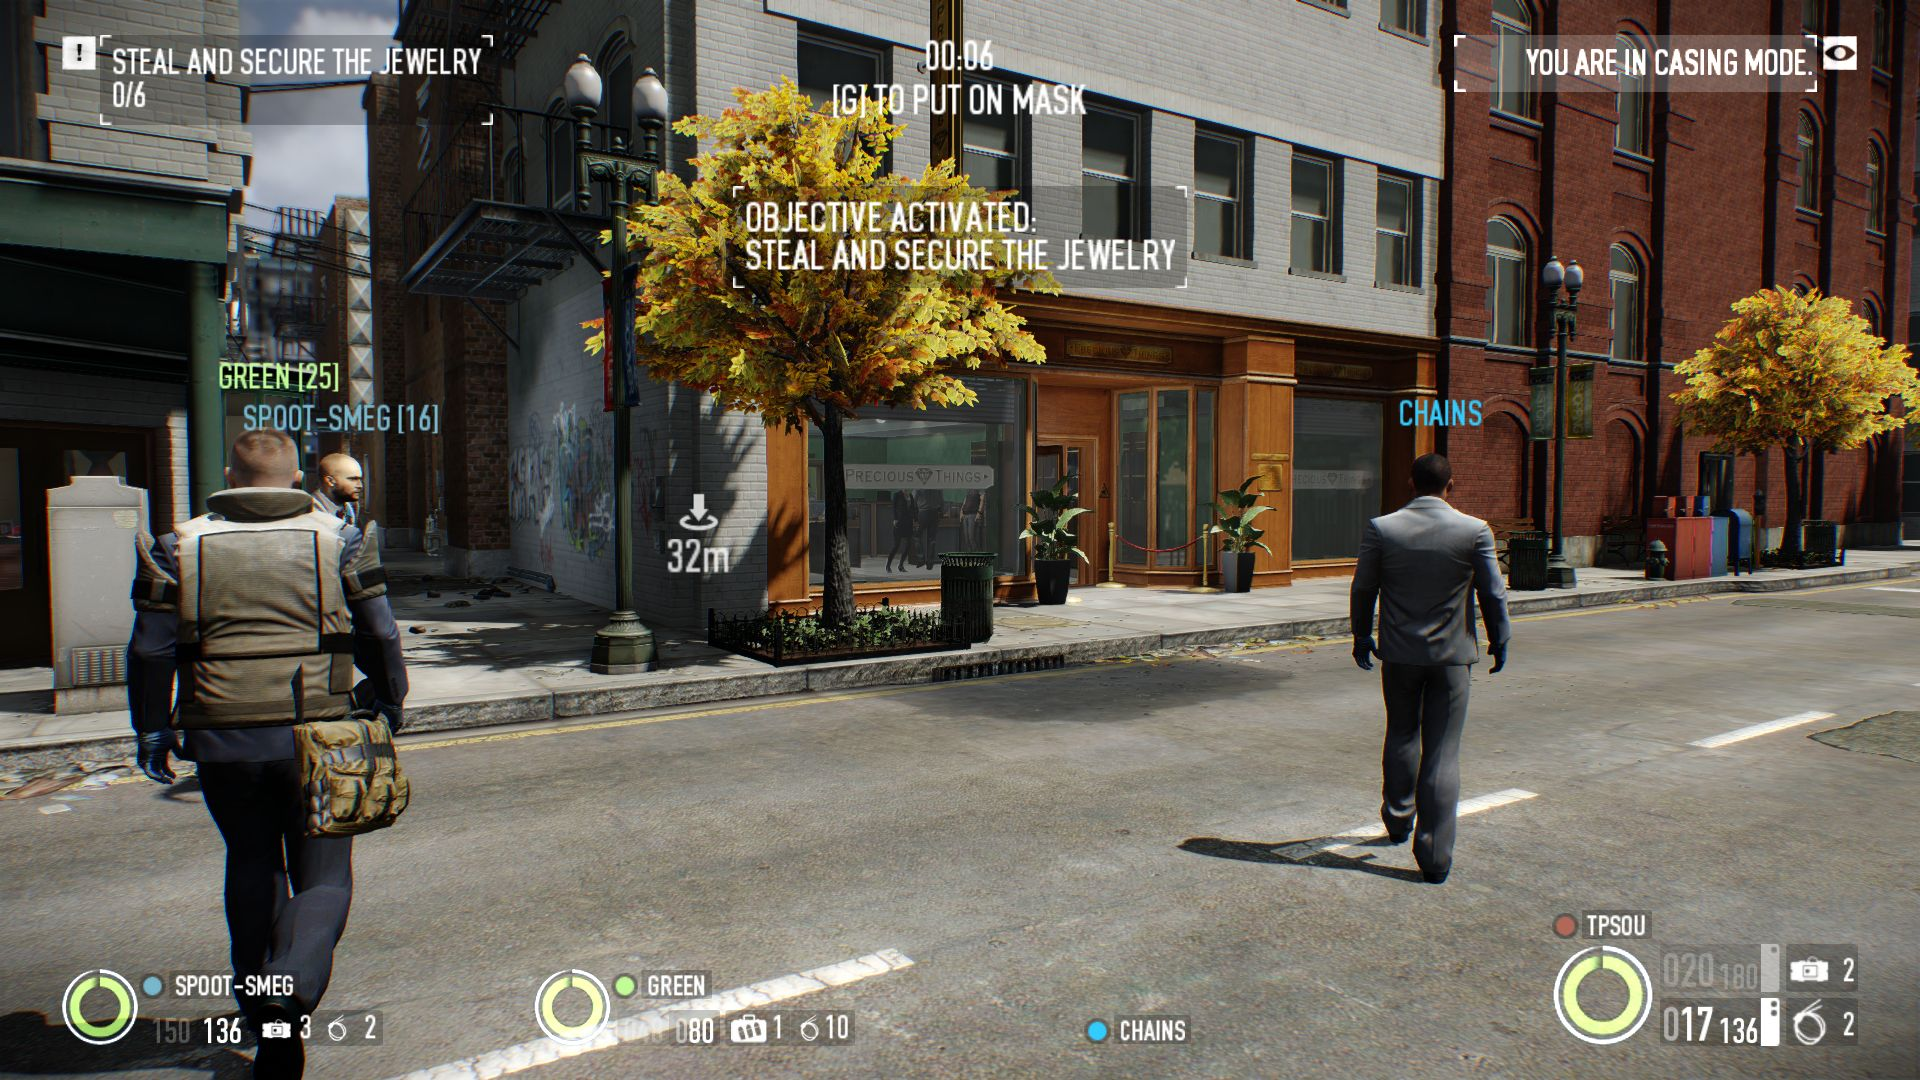 Payday 2 Payday Game Payday 3: Free Version Download Skidrow Full Games